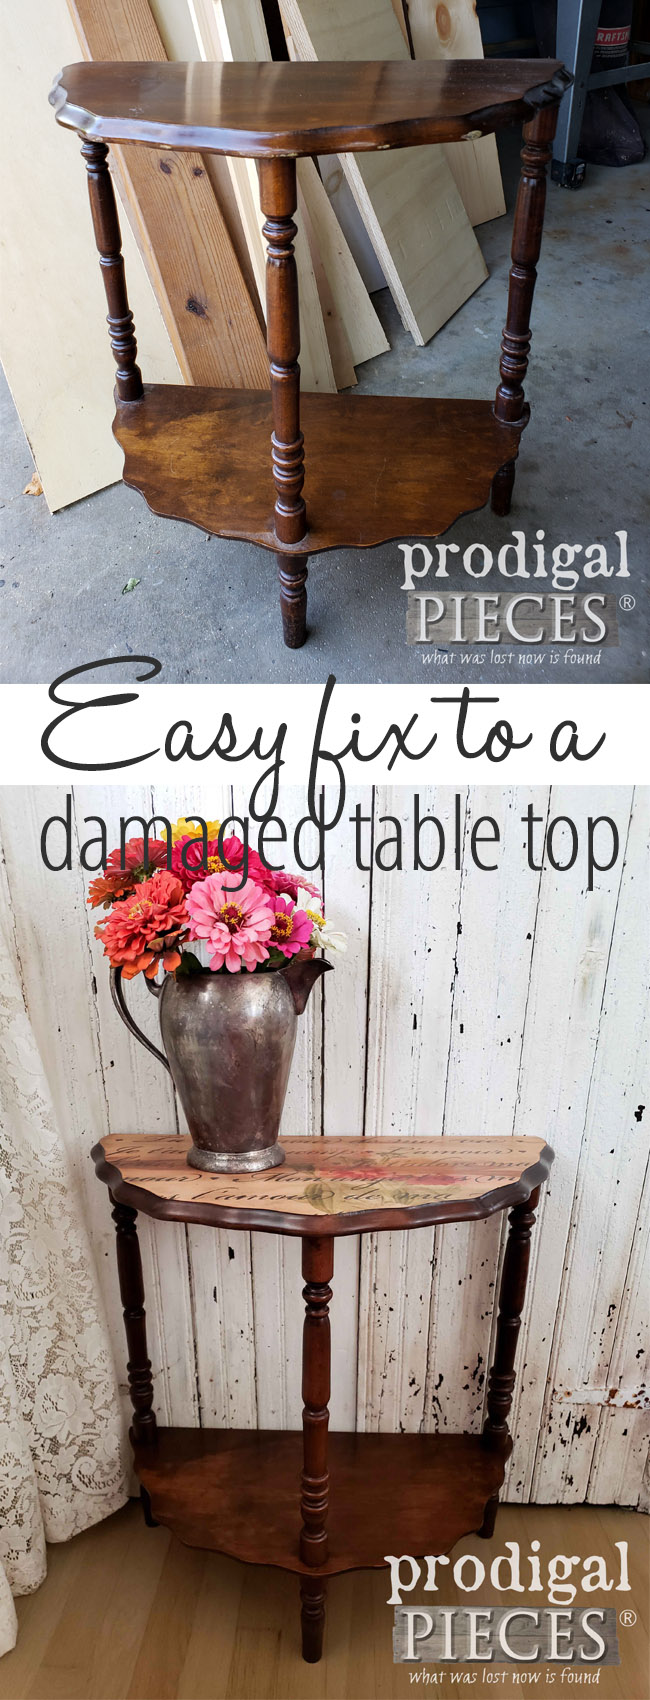 Got a table with wear you are thinking about getting rid of? Don't toss it just yet. See how easy this damaged table top repair can be with simple steps to create an entire new look with DIY image transfer and stencilng. Budget-friendly DIY by Larissa of Prodigal Pieces | prodigalpieces.com #prodigalpieces #diy #furniture #homedecor #handmade